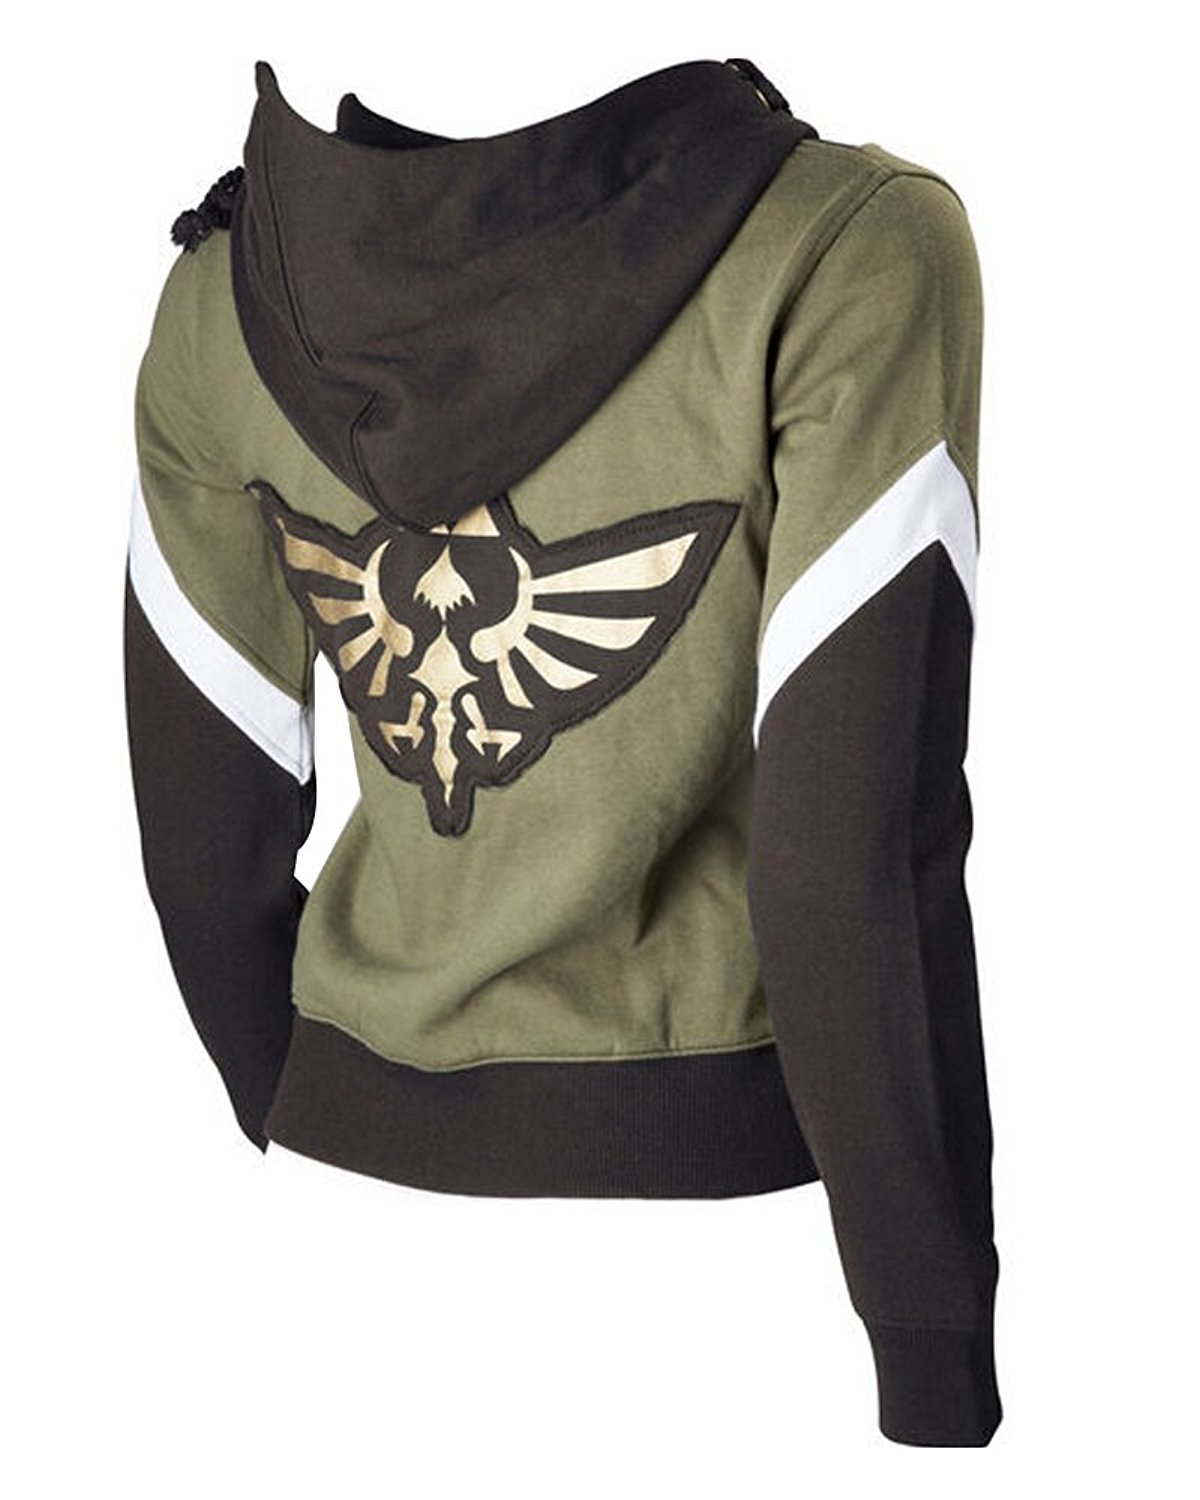 Ya-cos The Legend of Zelda Link Hoodie Hyrule Warriors Zipper Coat Jacket